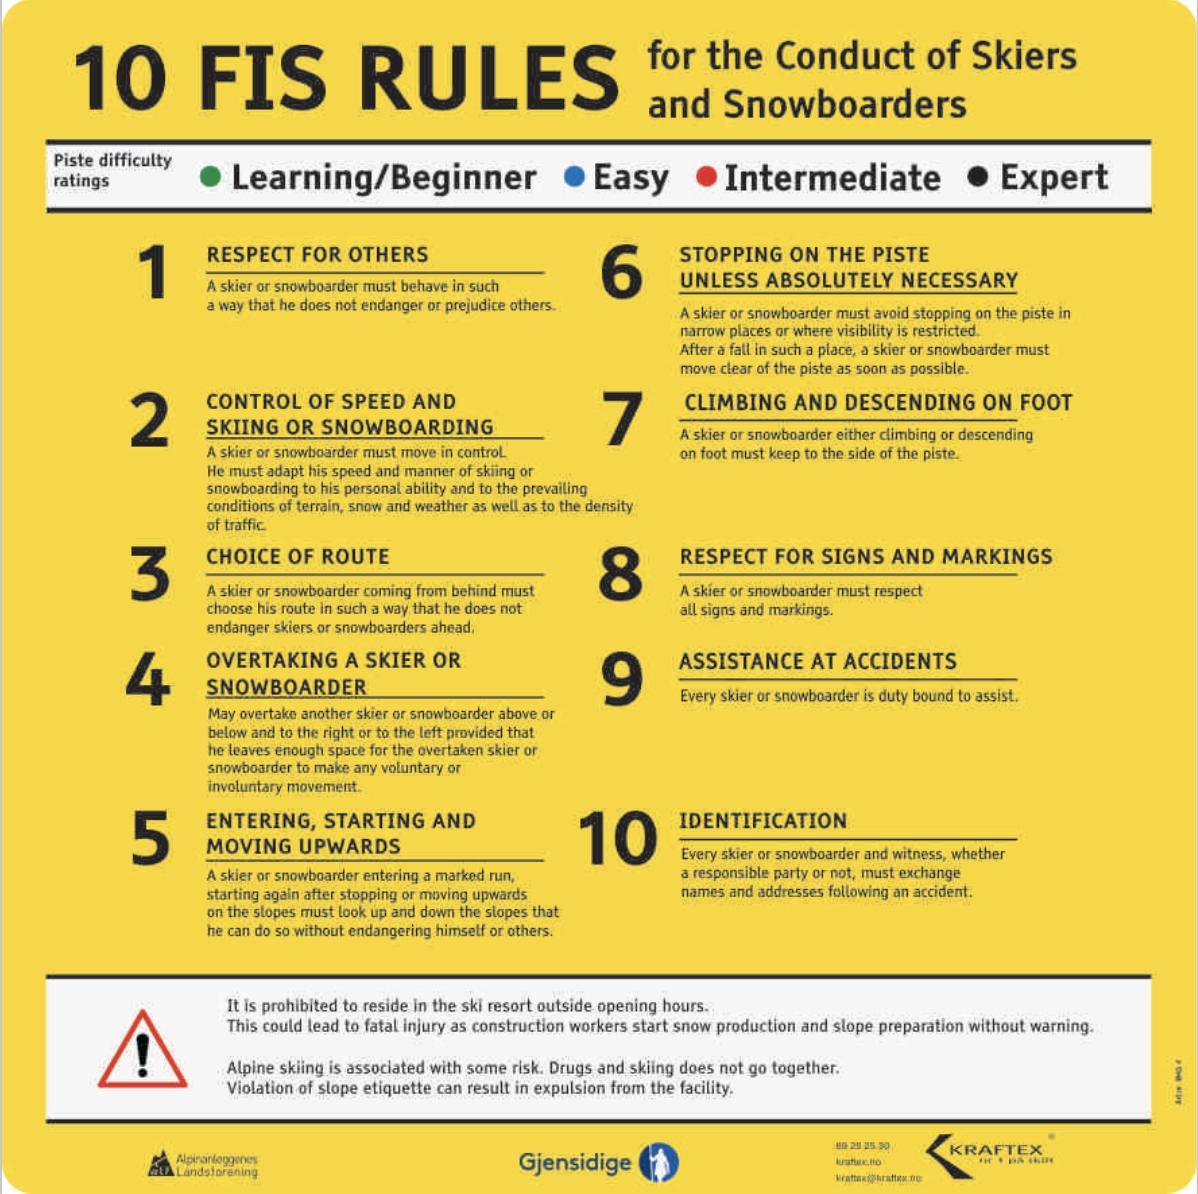 Rules of conduct for skiers and snowboarders